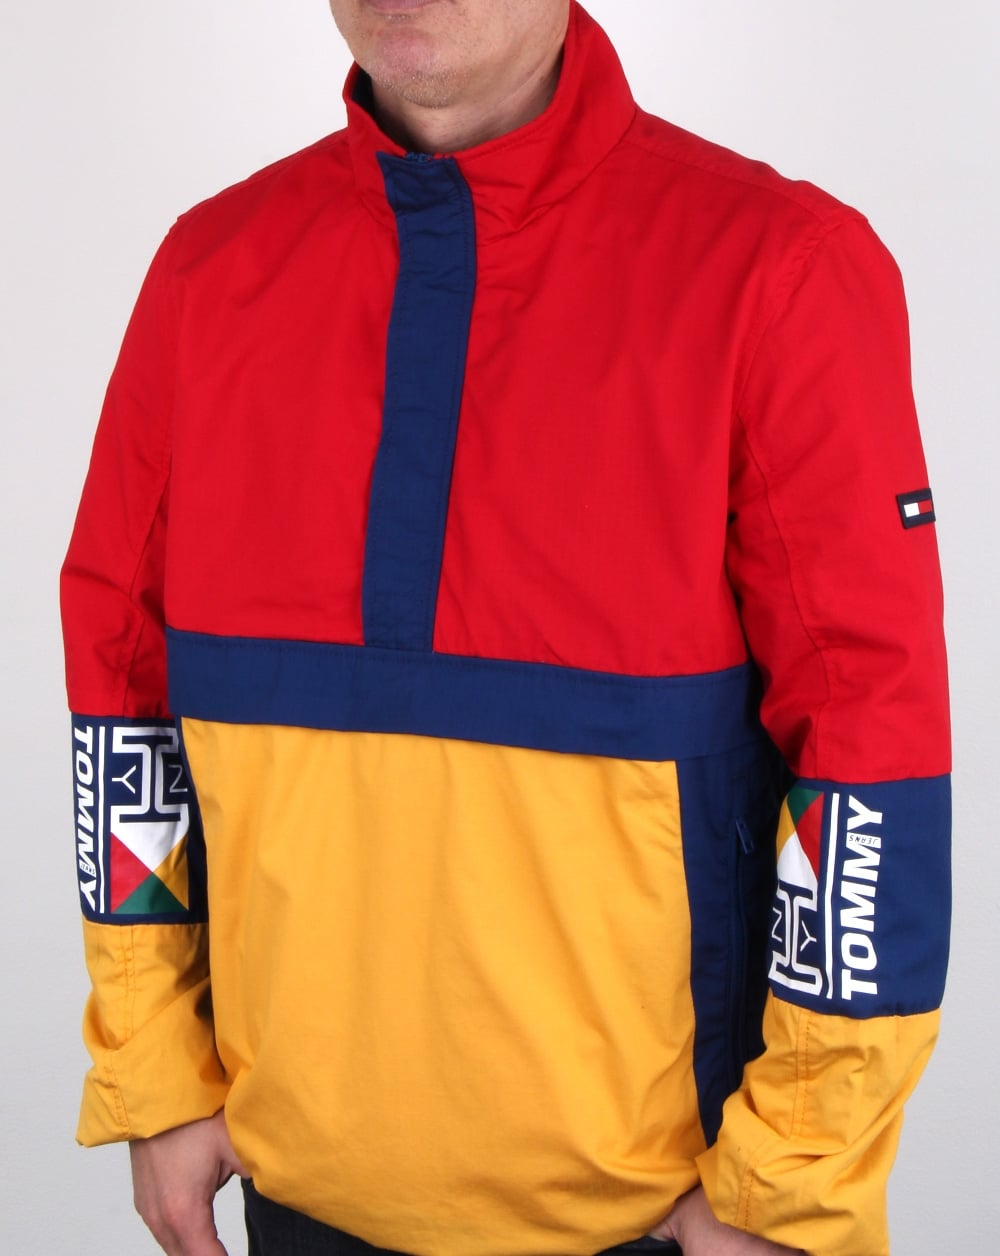 e9489148 Tommy Hilfiger Jeans Tommy Hilfiger Retro Block Pullover Jacket Red /yellow/navy